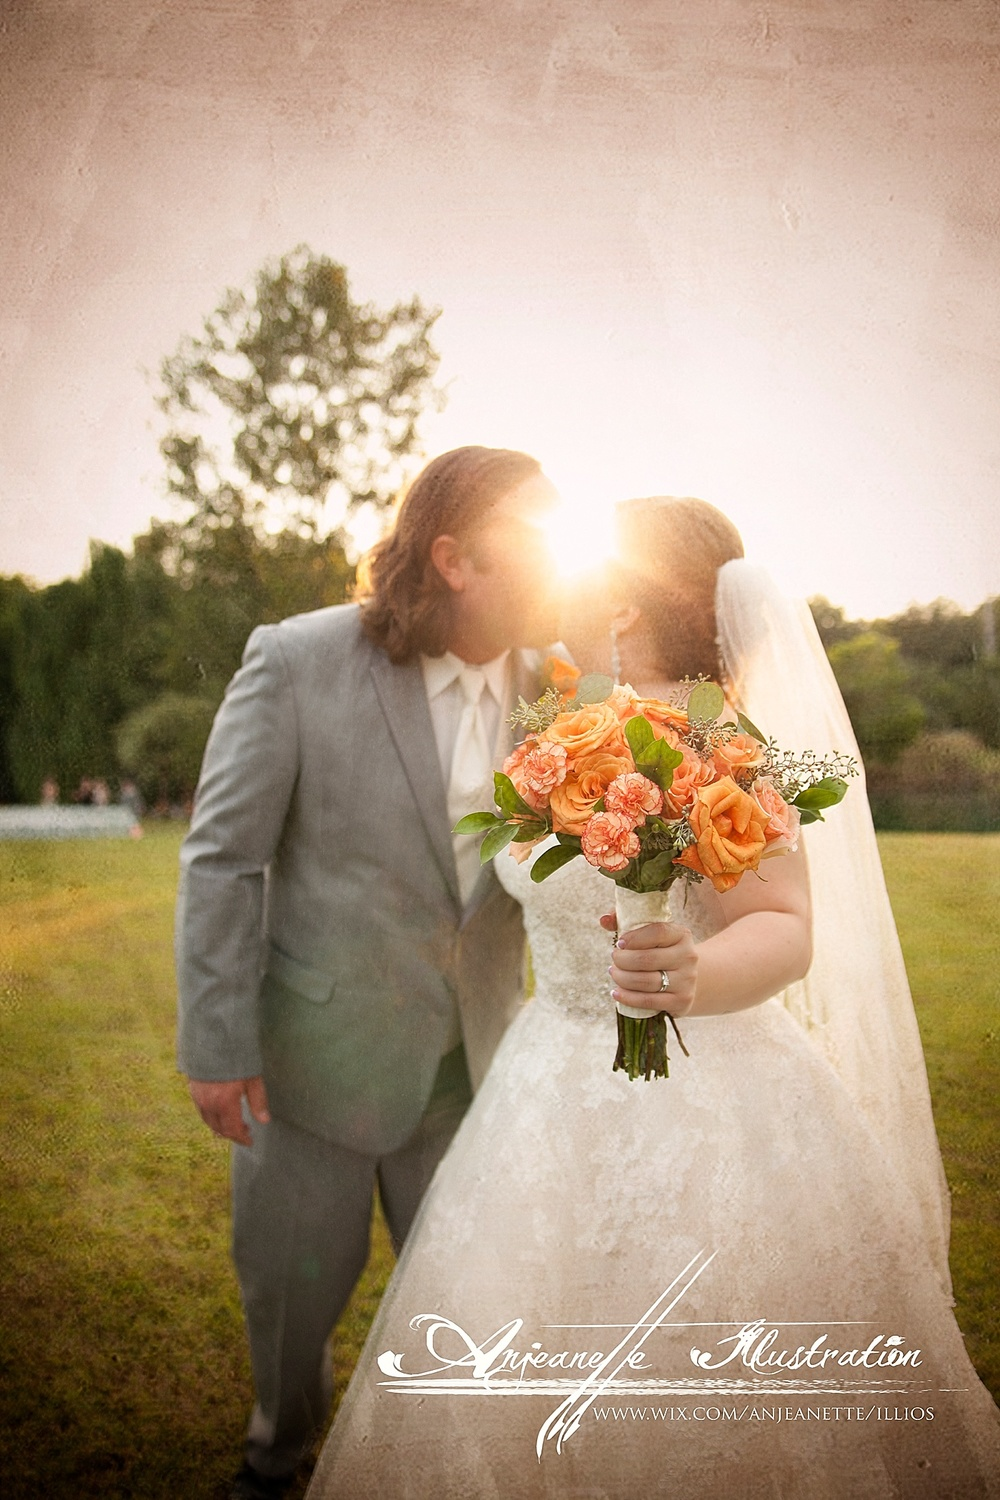 Hendersonville Tn Nashville Area Artistic Wedding Photographer | Anjeanette Illustration Photography 37075